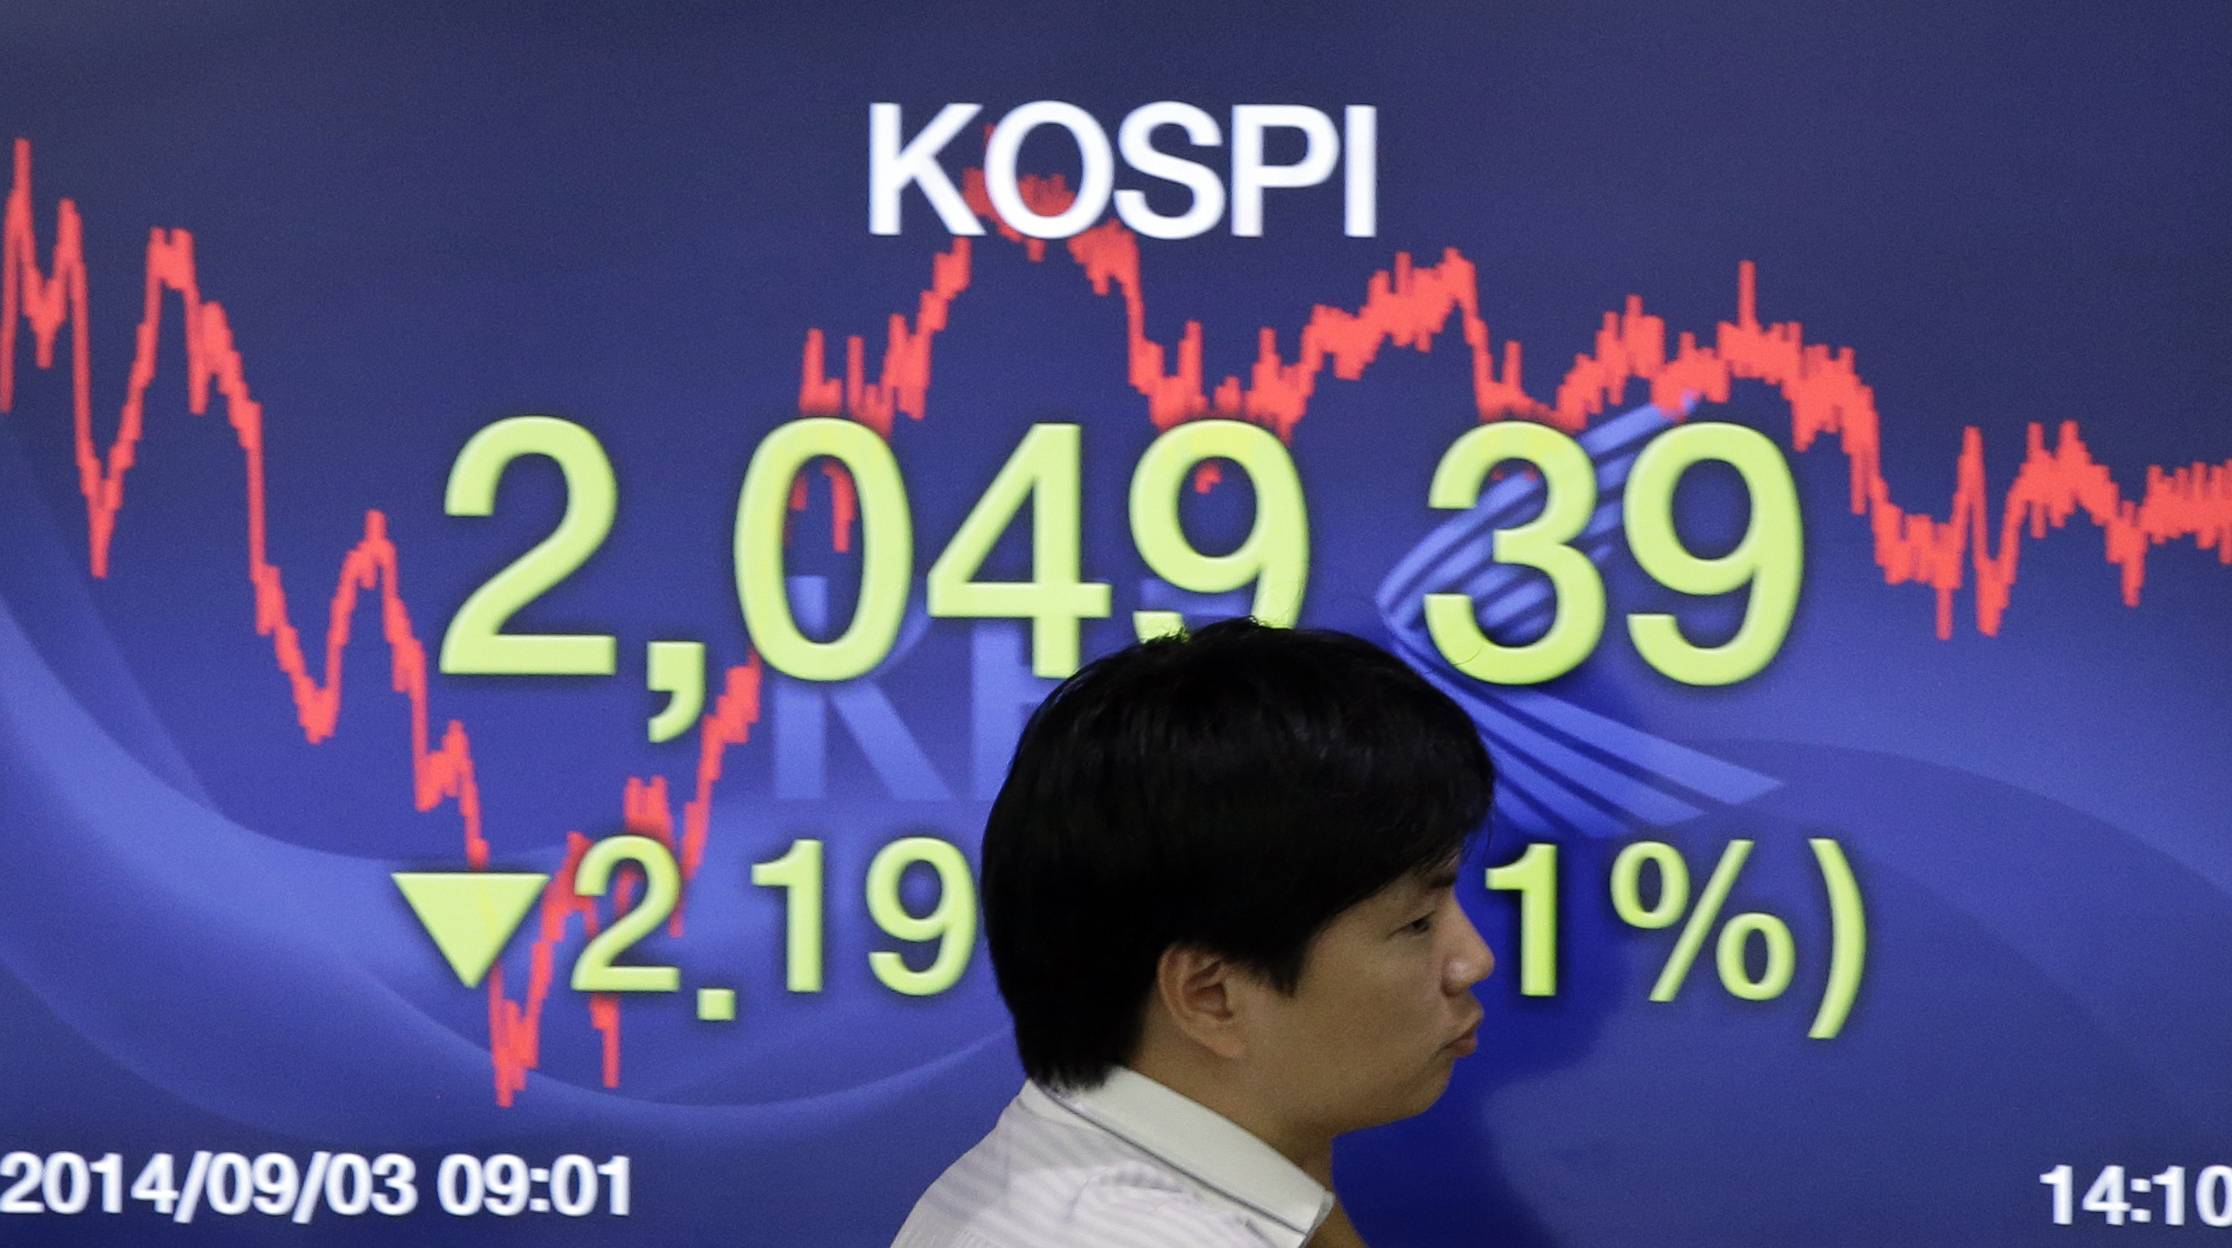 Asian stock markets rose Wednesday, lifted by new signs of strength in the U.S. economy and expectations that Europe's central bank will provide more support to the flagging region. Seen here is a screen showing the Korea Composite Stock Price Index at the Korea Exchange Bank headquarters in Seoul, South Korea, Wednesday.